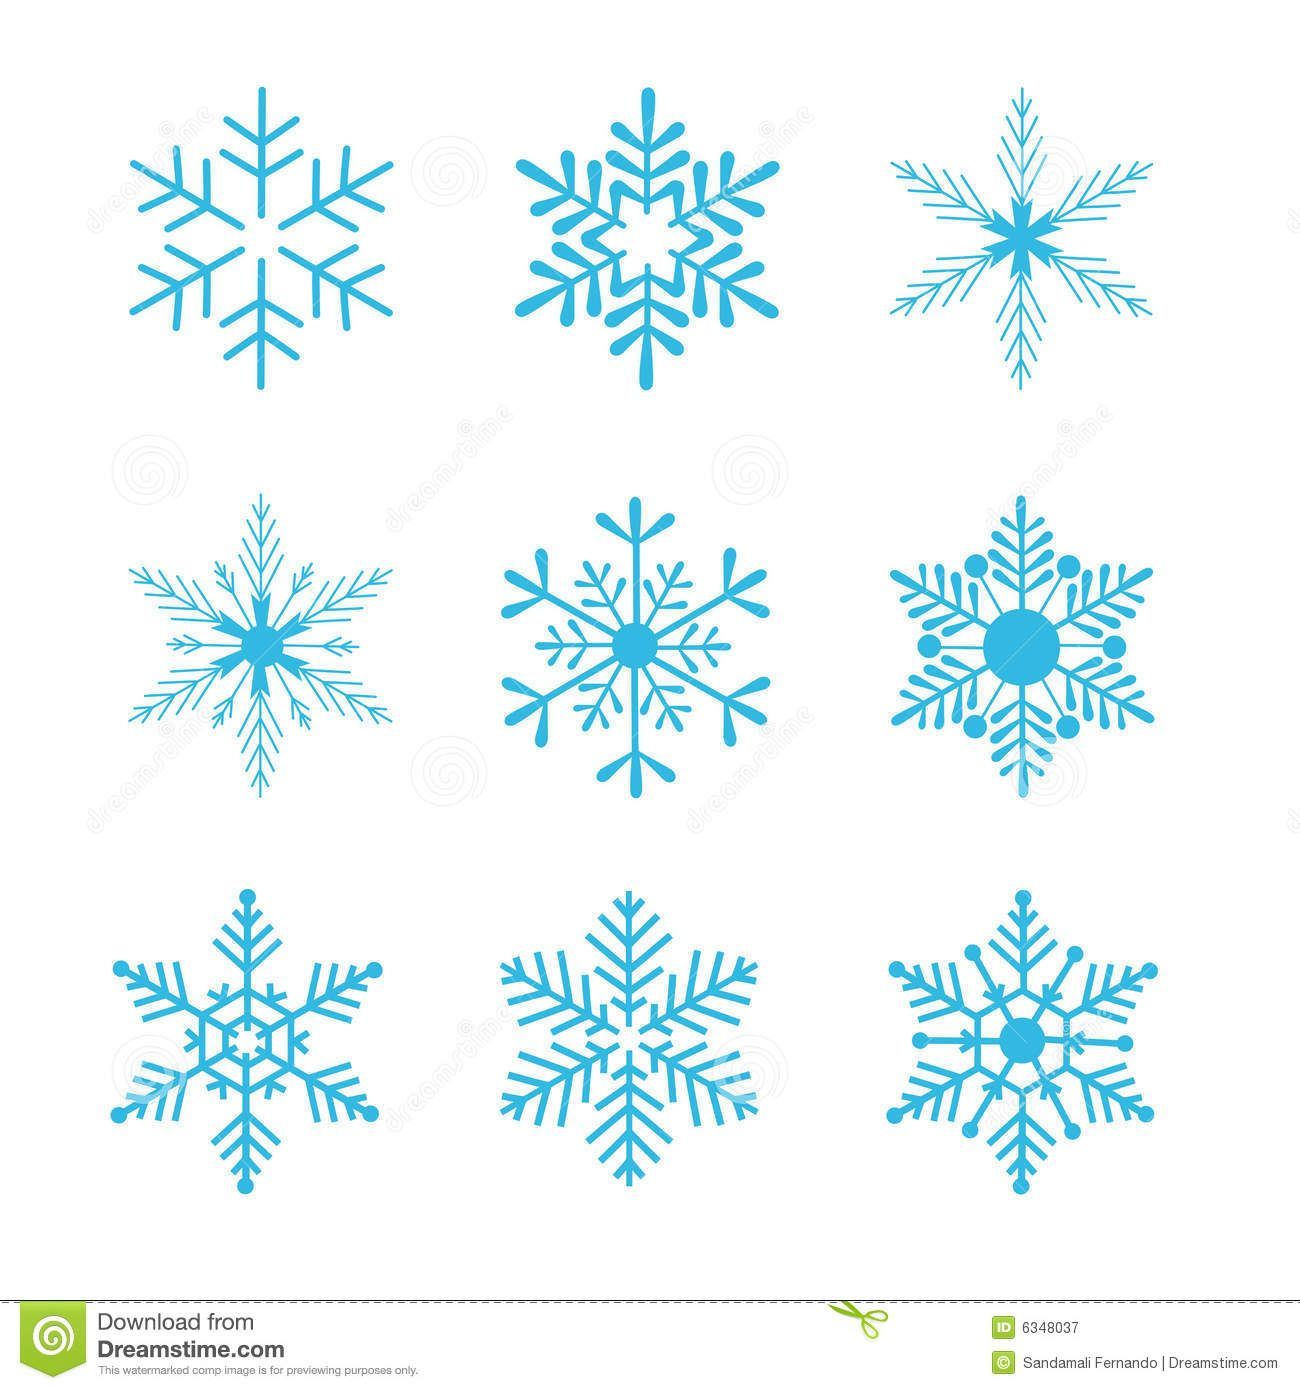 Wallpapers Images Photos Flocon Dessin Neige Pour Bleu Dewallpapers Images Photo Flocon De Neige Dessin Broderie Flocon De Neige Cristaux De Neige